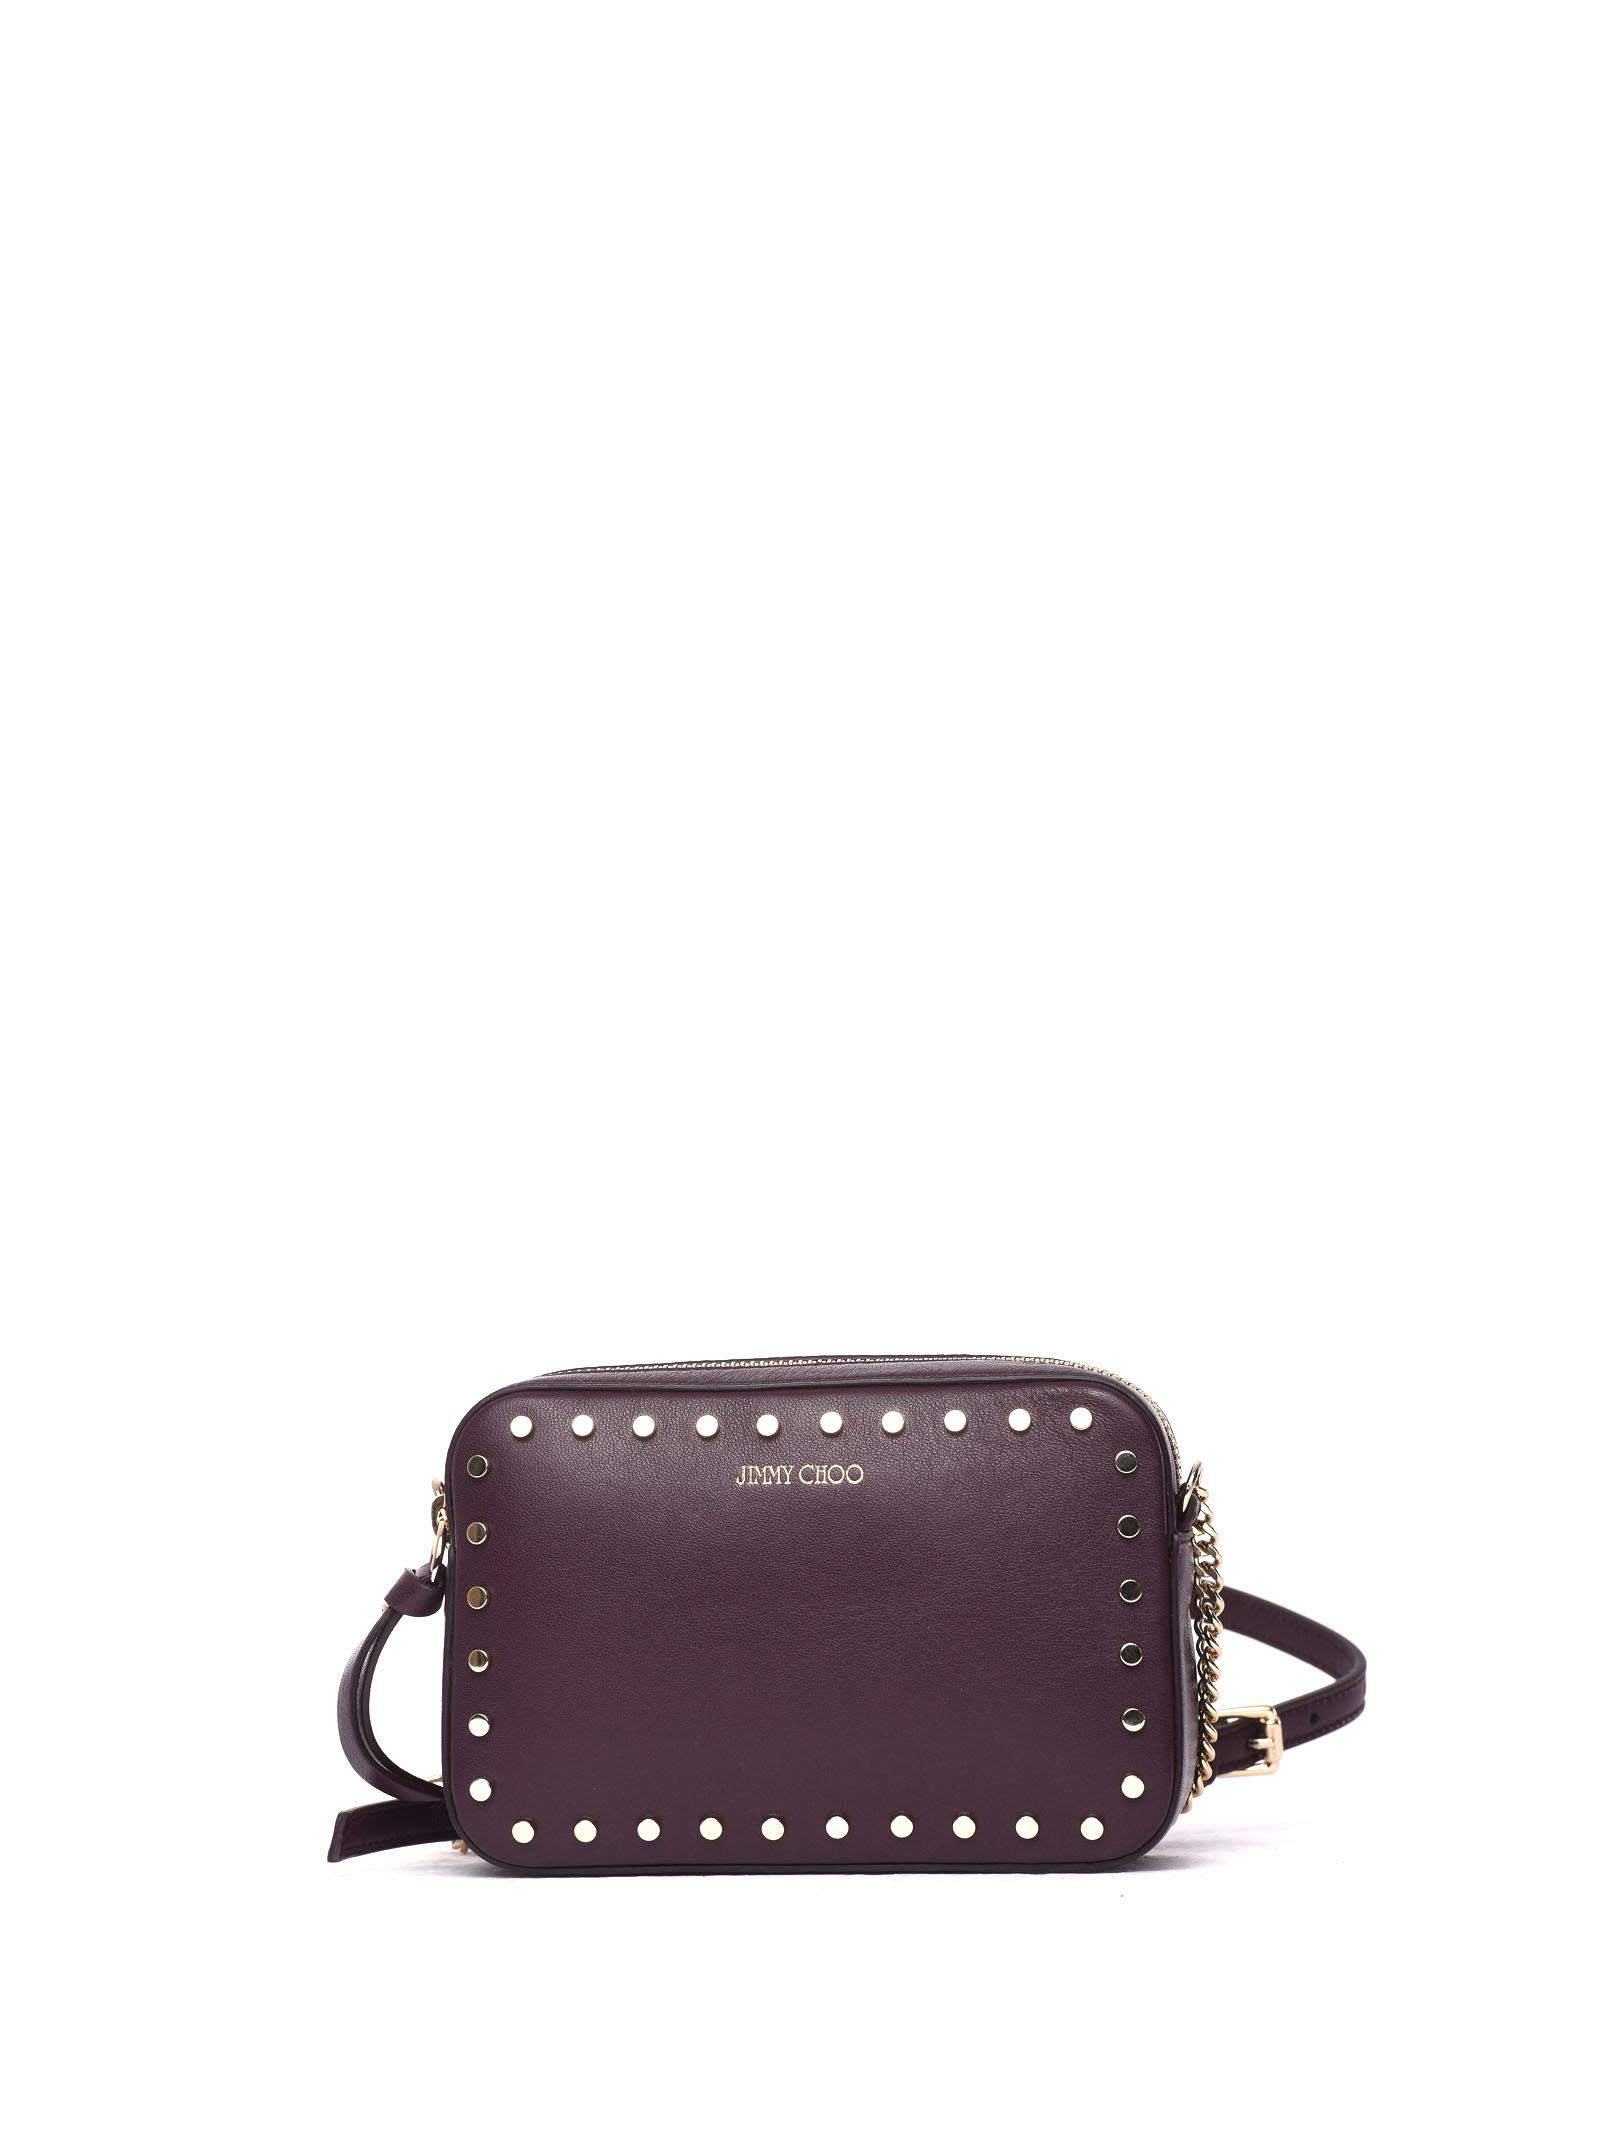 Quinn Cross Body Bag In Burgundy Leather And Studs